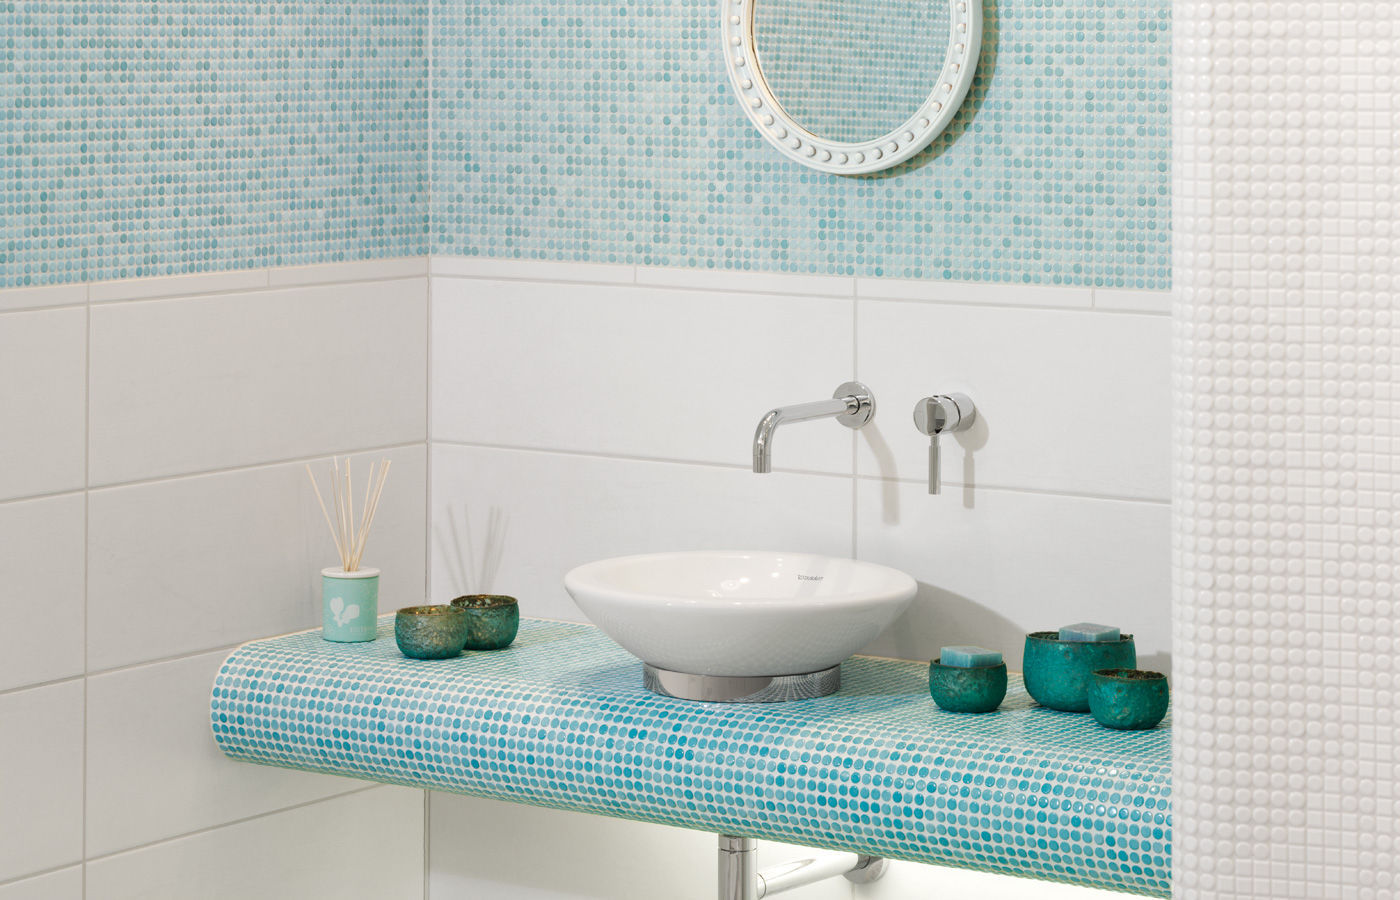 Bathroom mosaic tile / kitchen / living room / wall - LOOP : LIGHT ...